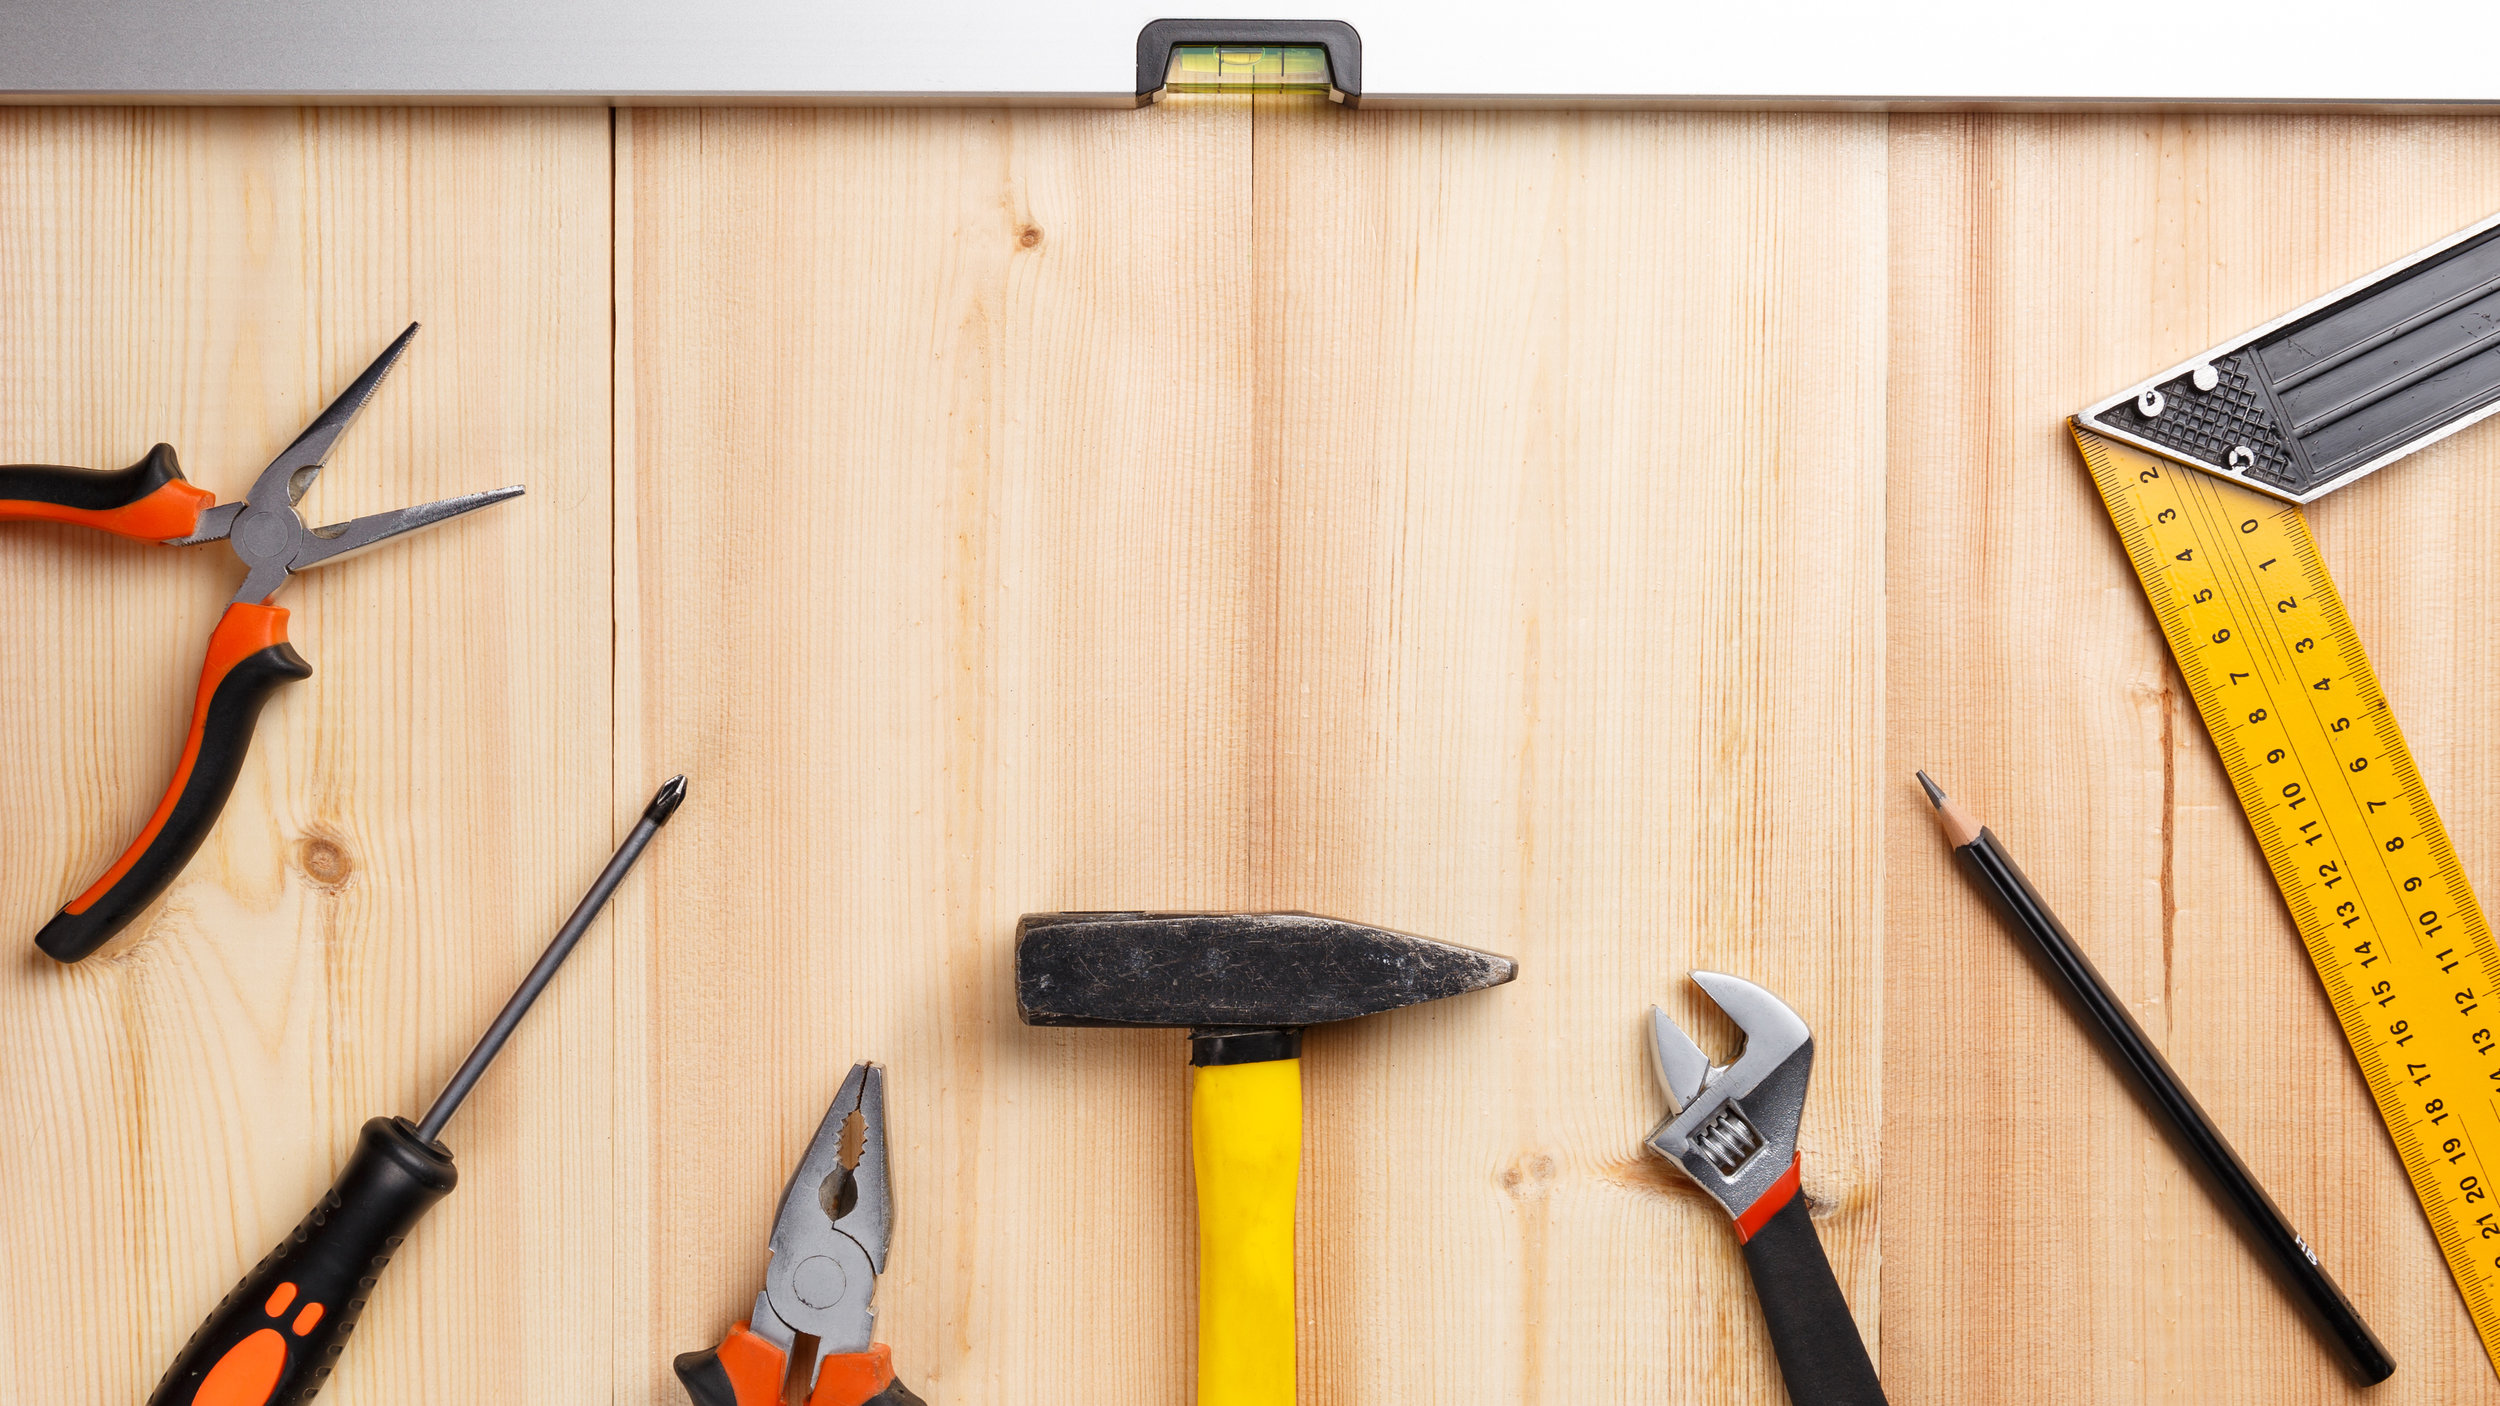 DIY Power Wall Toolkit - Learn more about your power wall